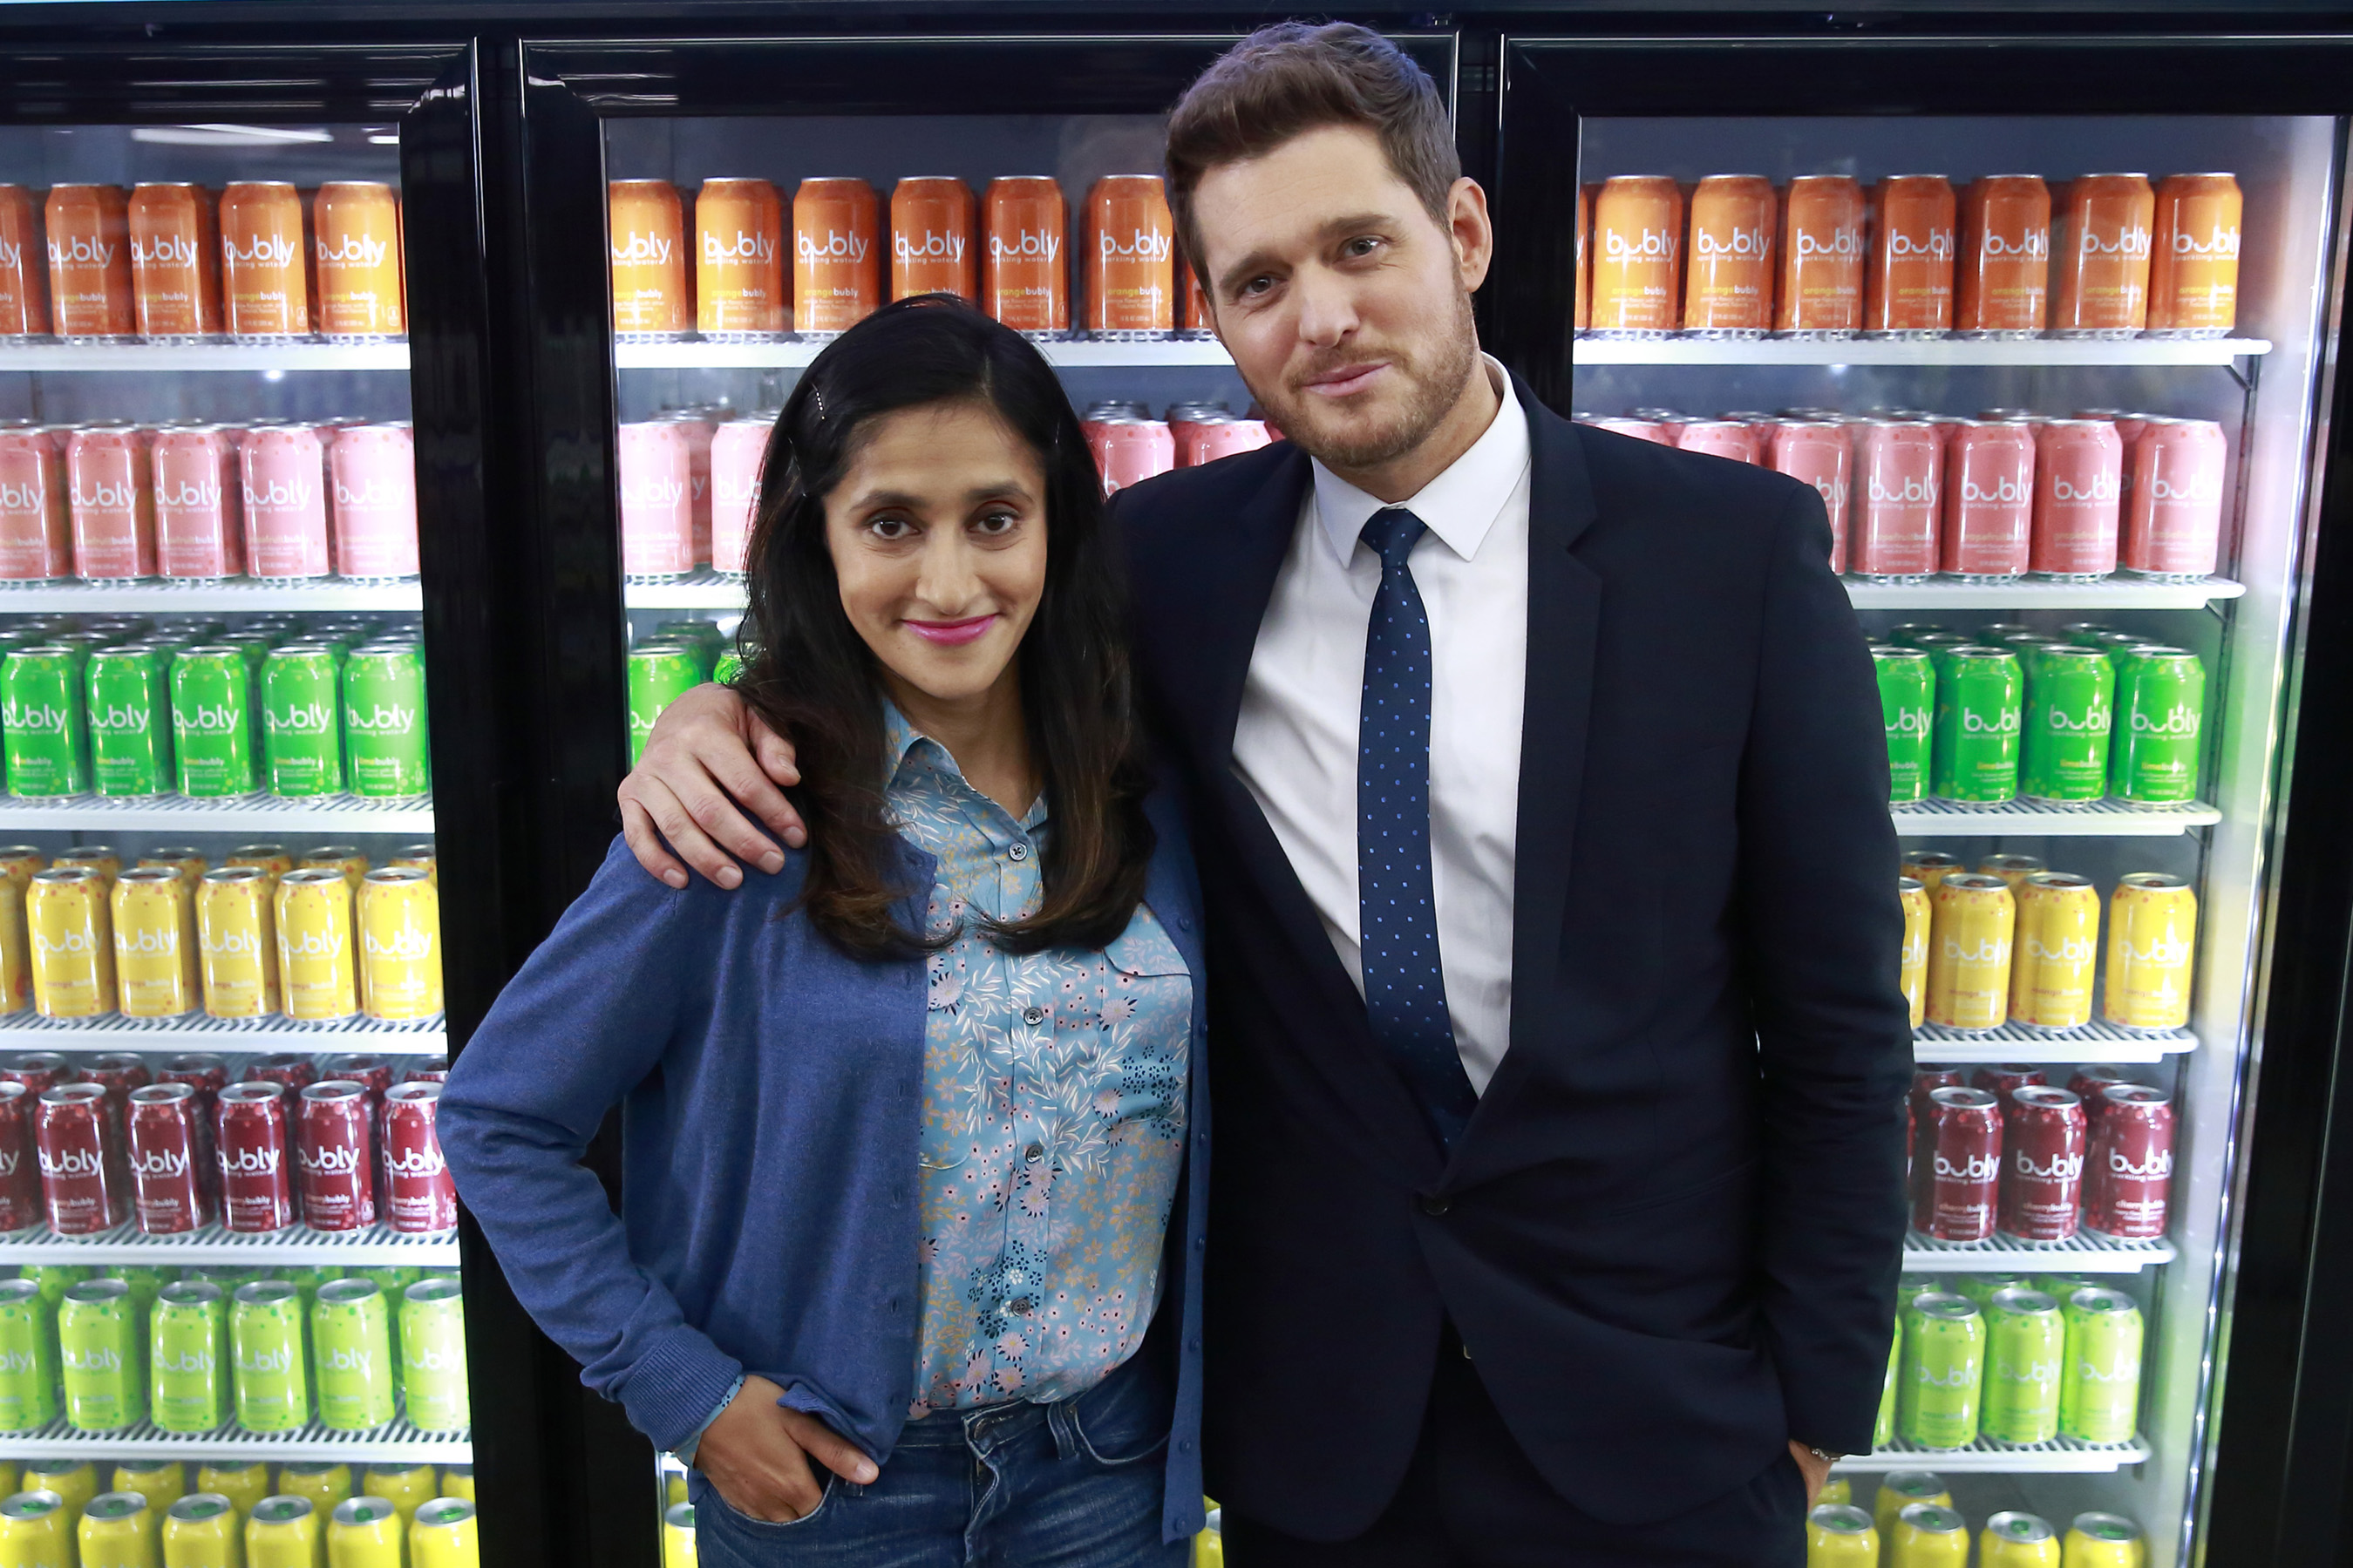 Aparna Nancherla tries to convince Michael Bublé that it is in fact bubbly